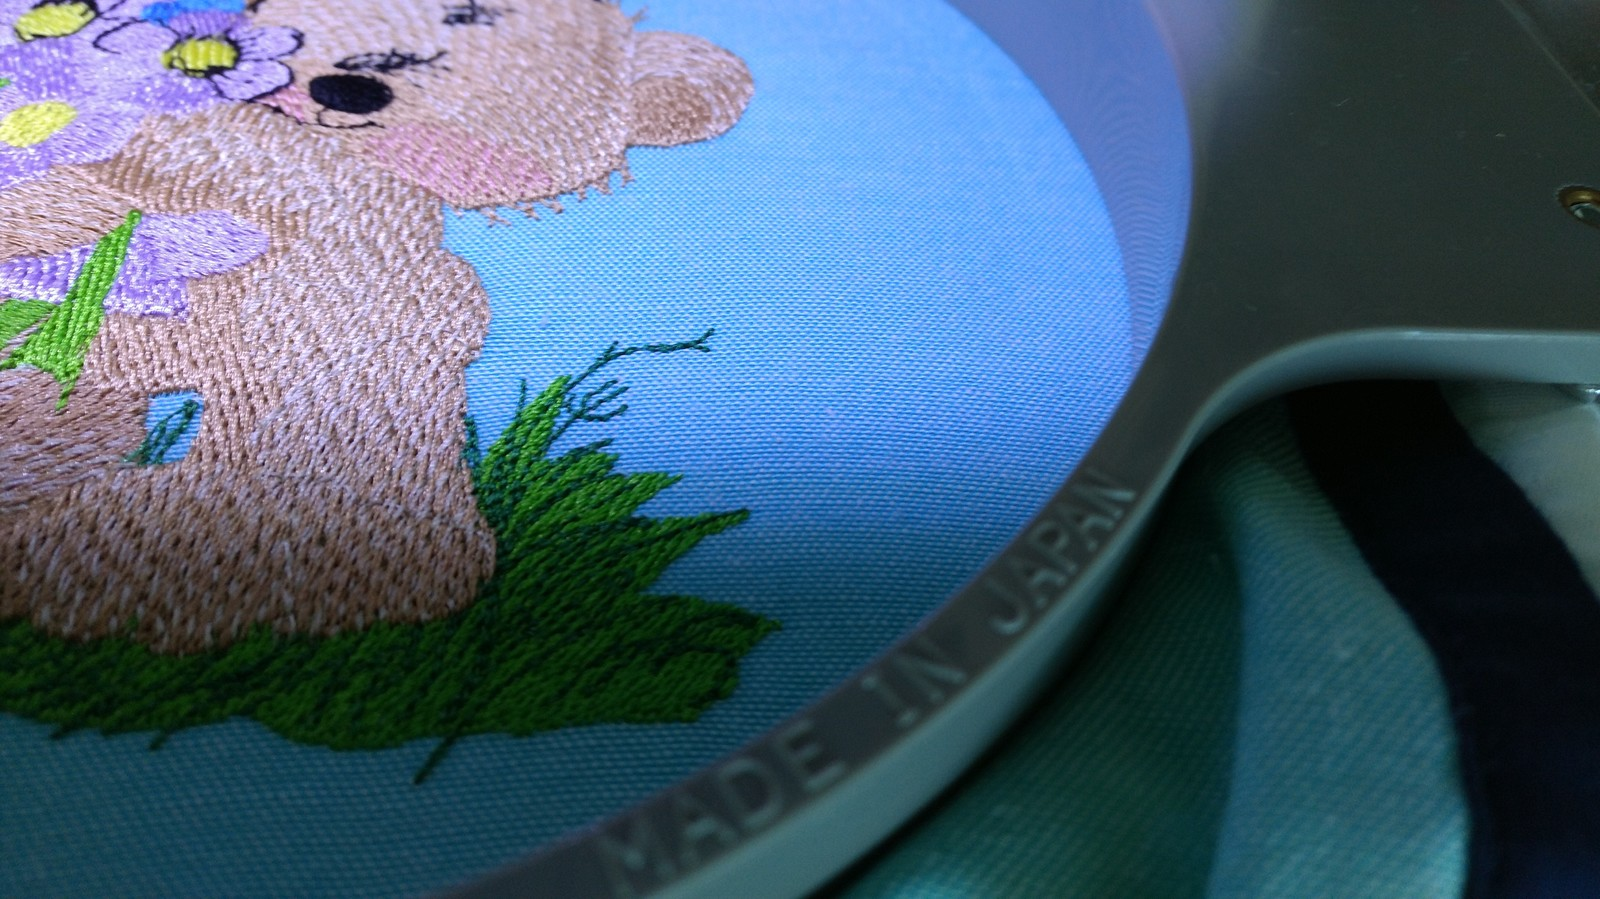 Embroidery process teddy bear design